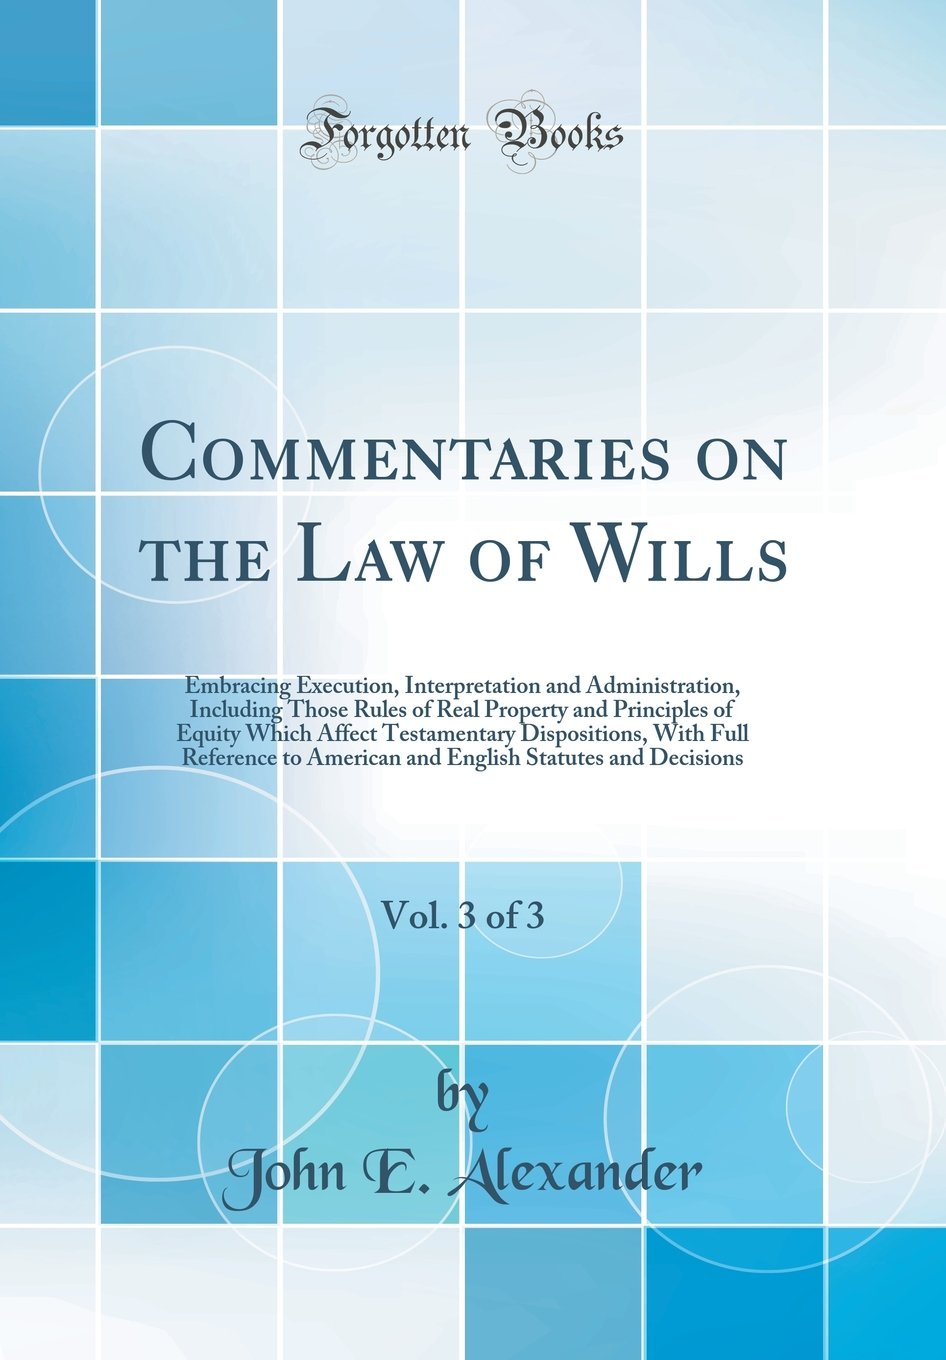 Commentaries on the Law of Wills, Vol. 3 of 3: Embracing Execution, Interpretation and Administration, Including Those Rules of Real Property and ... Full Reference to American and English Stat PDF